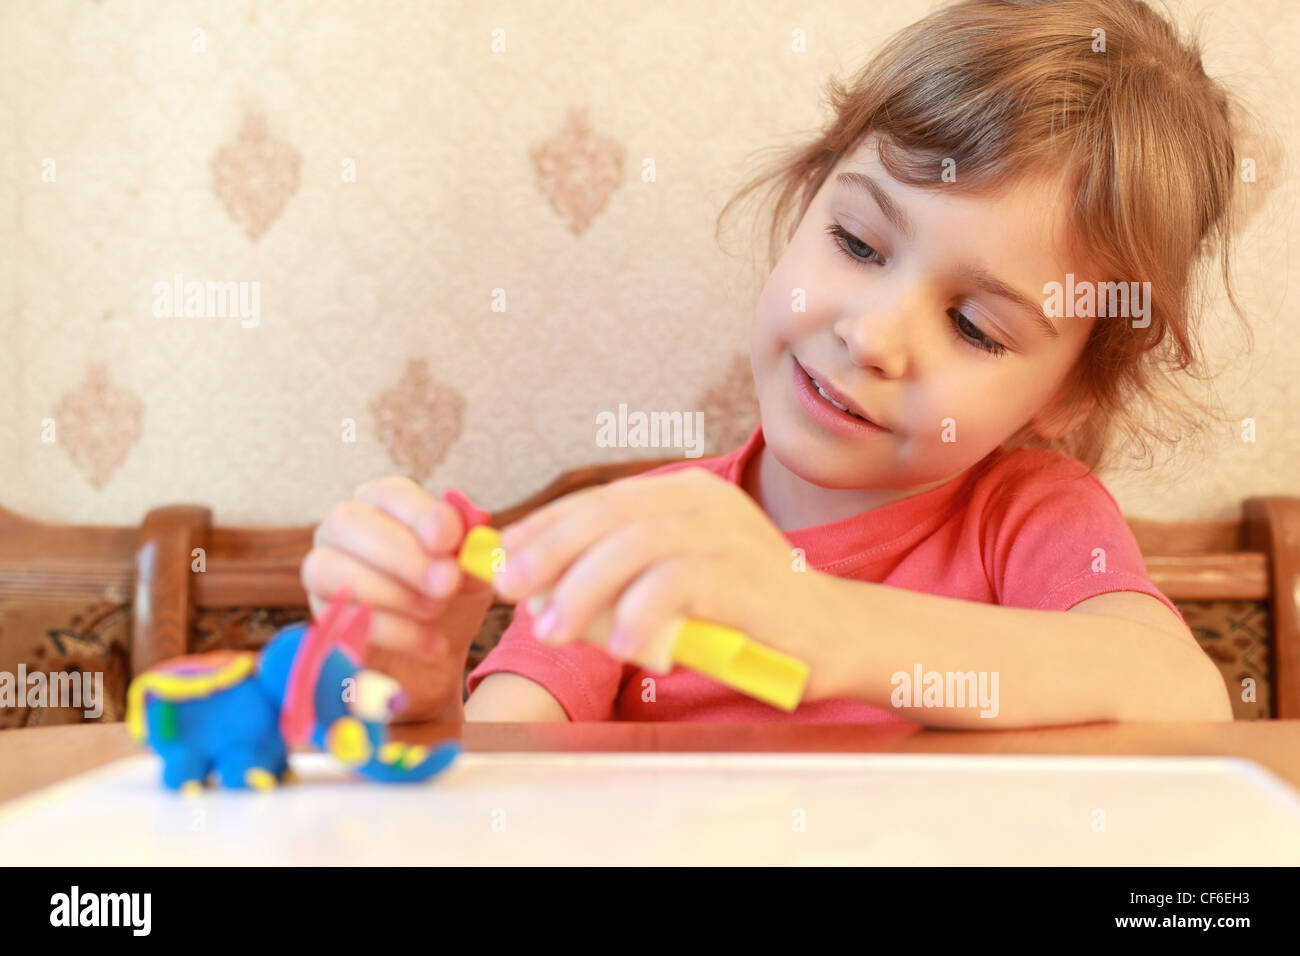 Little girl is at  table and models from plasticine, focus on  girl - Stock Image